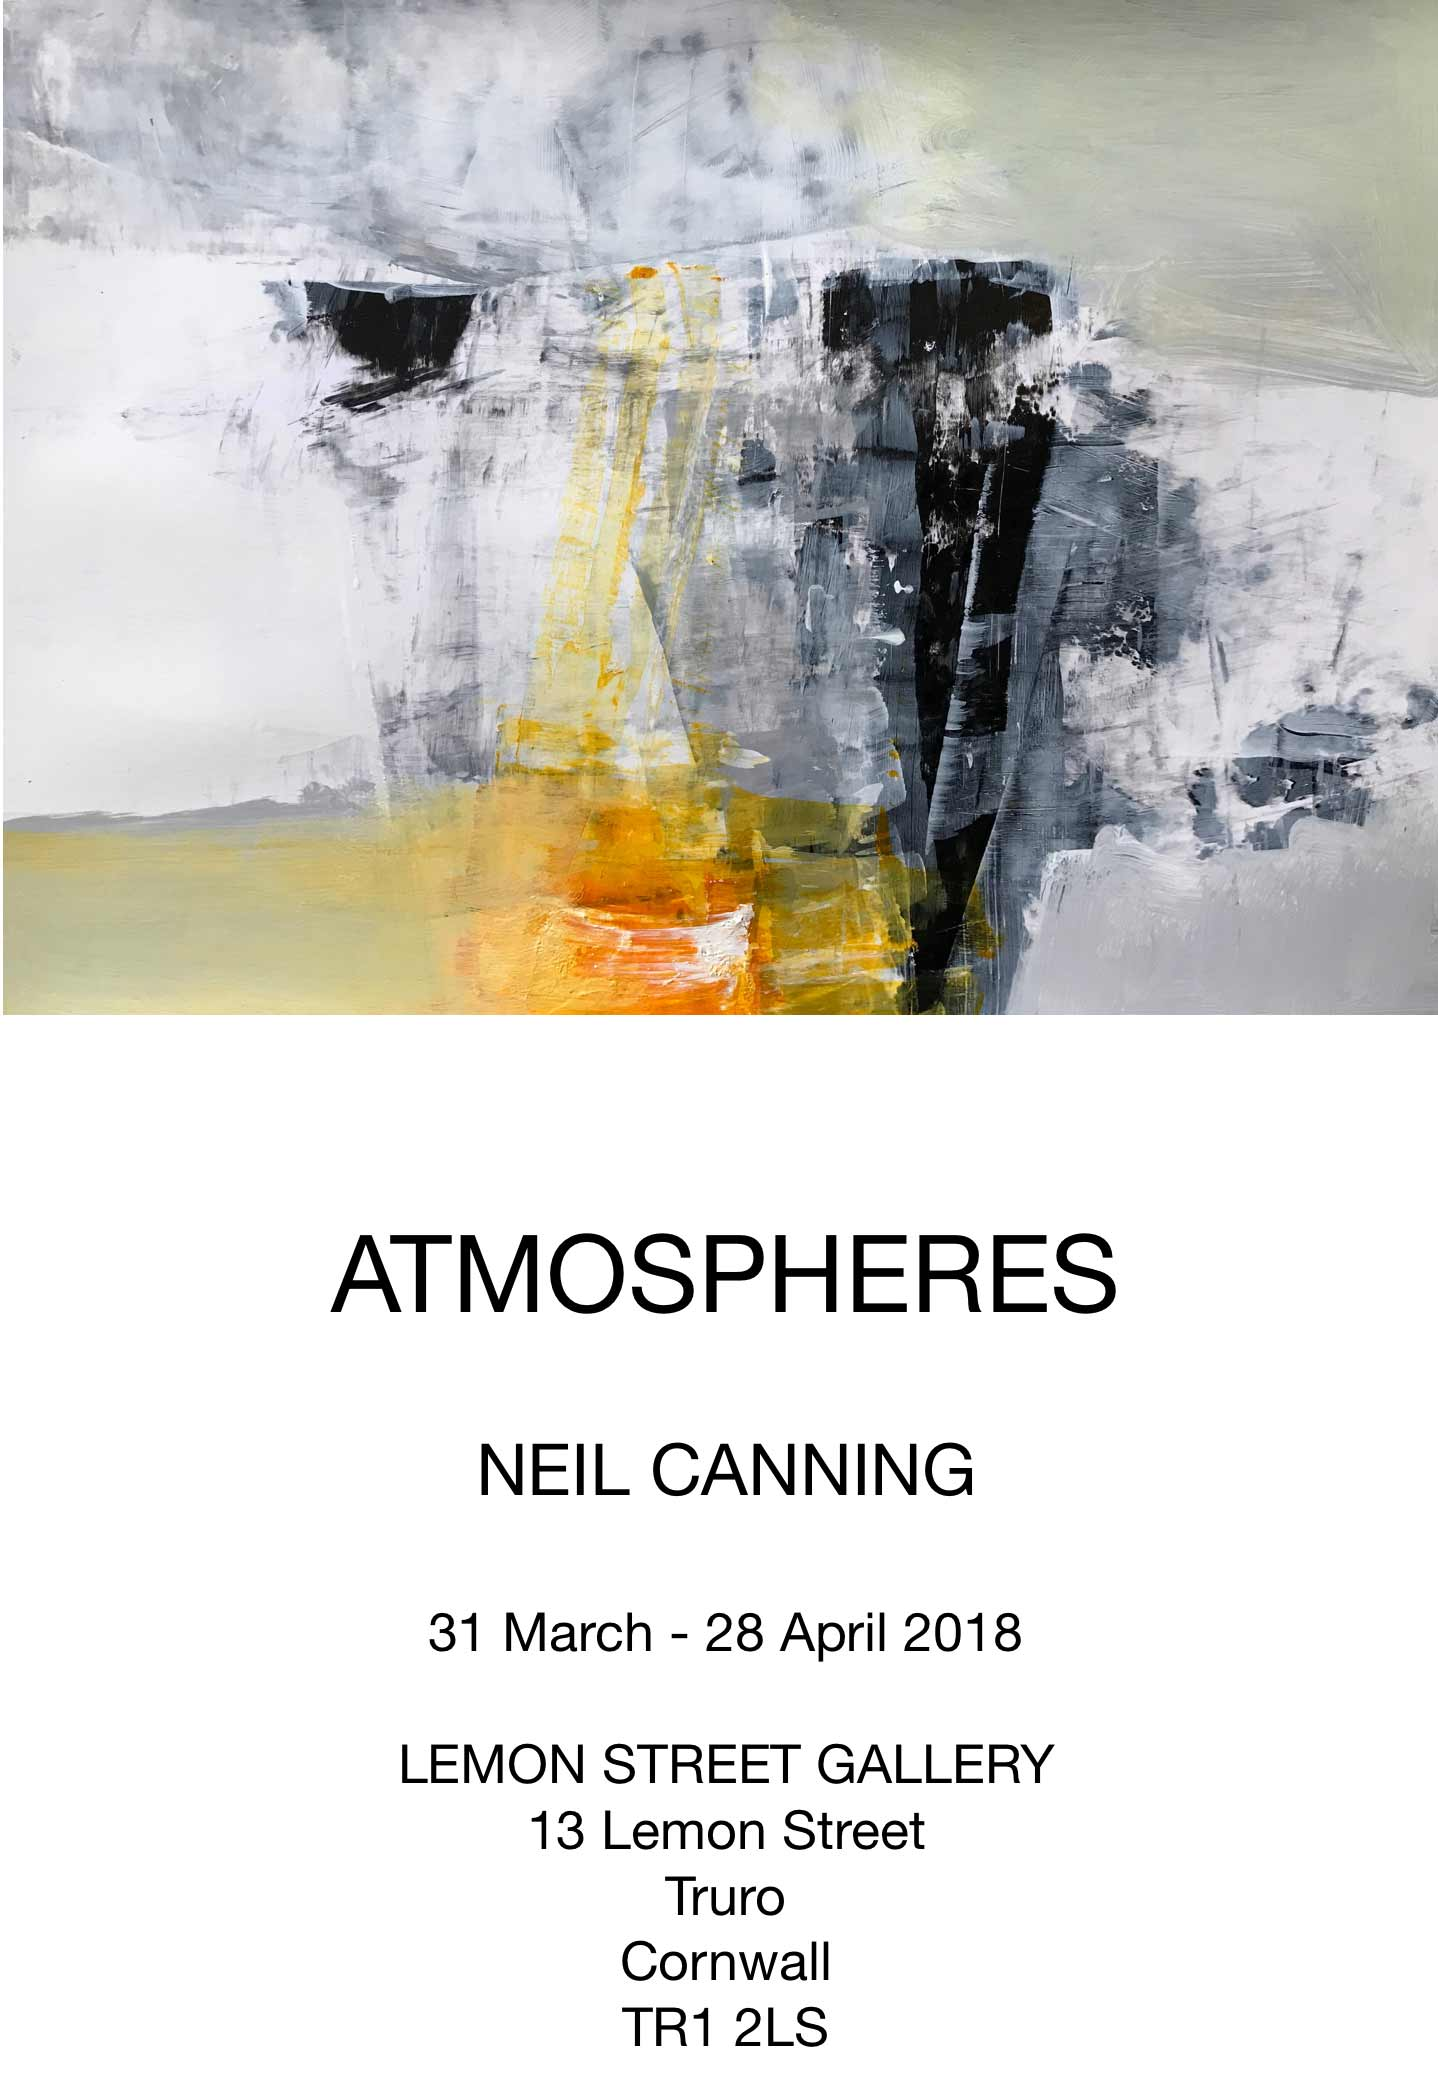 Atmospheres promotional flyer for Lemon Street Gallery art Show March 31st 2018